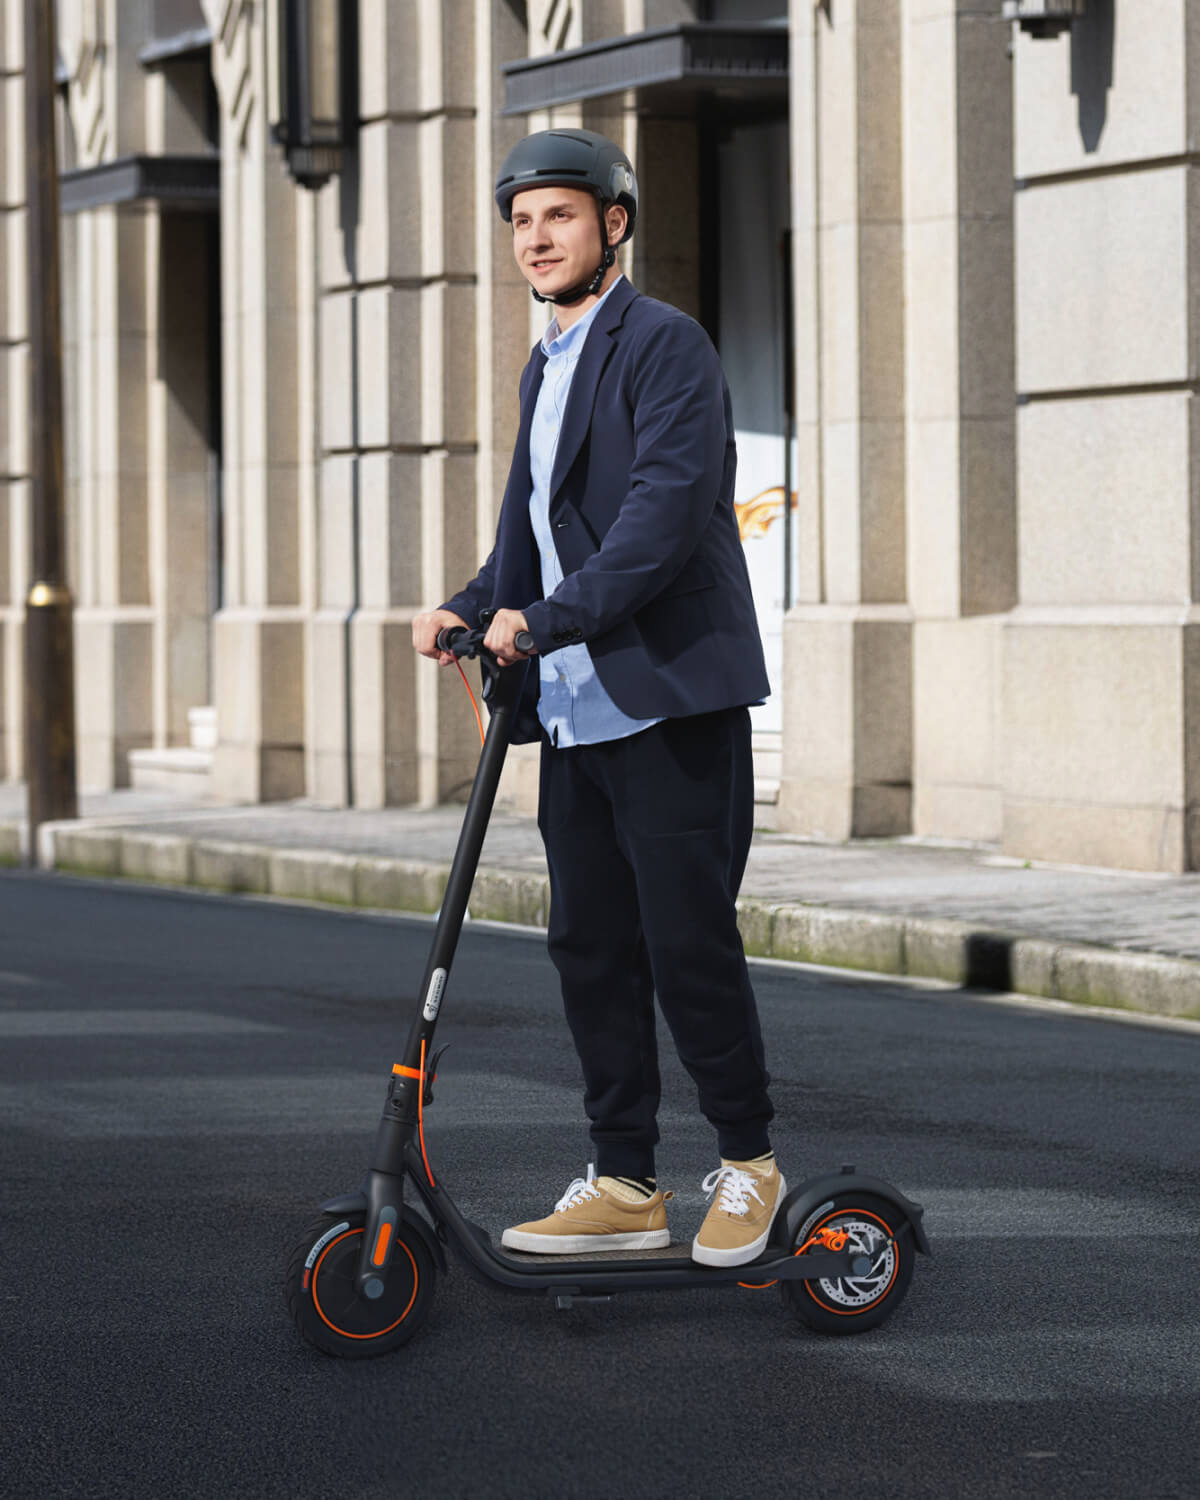 Ninebot F40 scooter riding experience